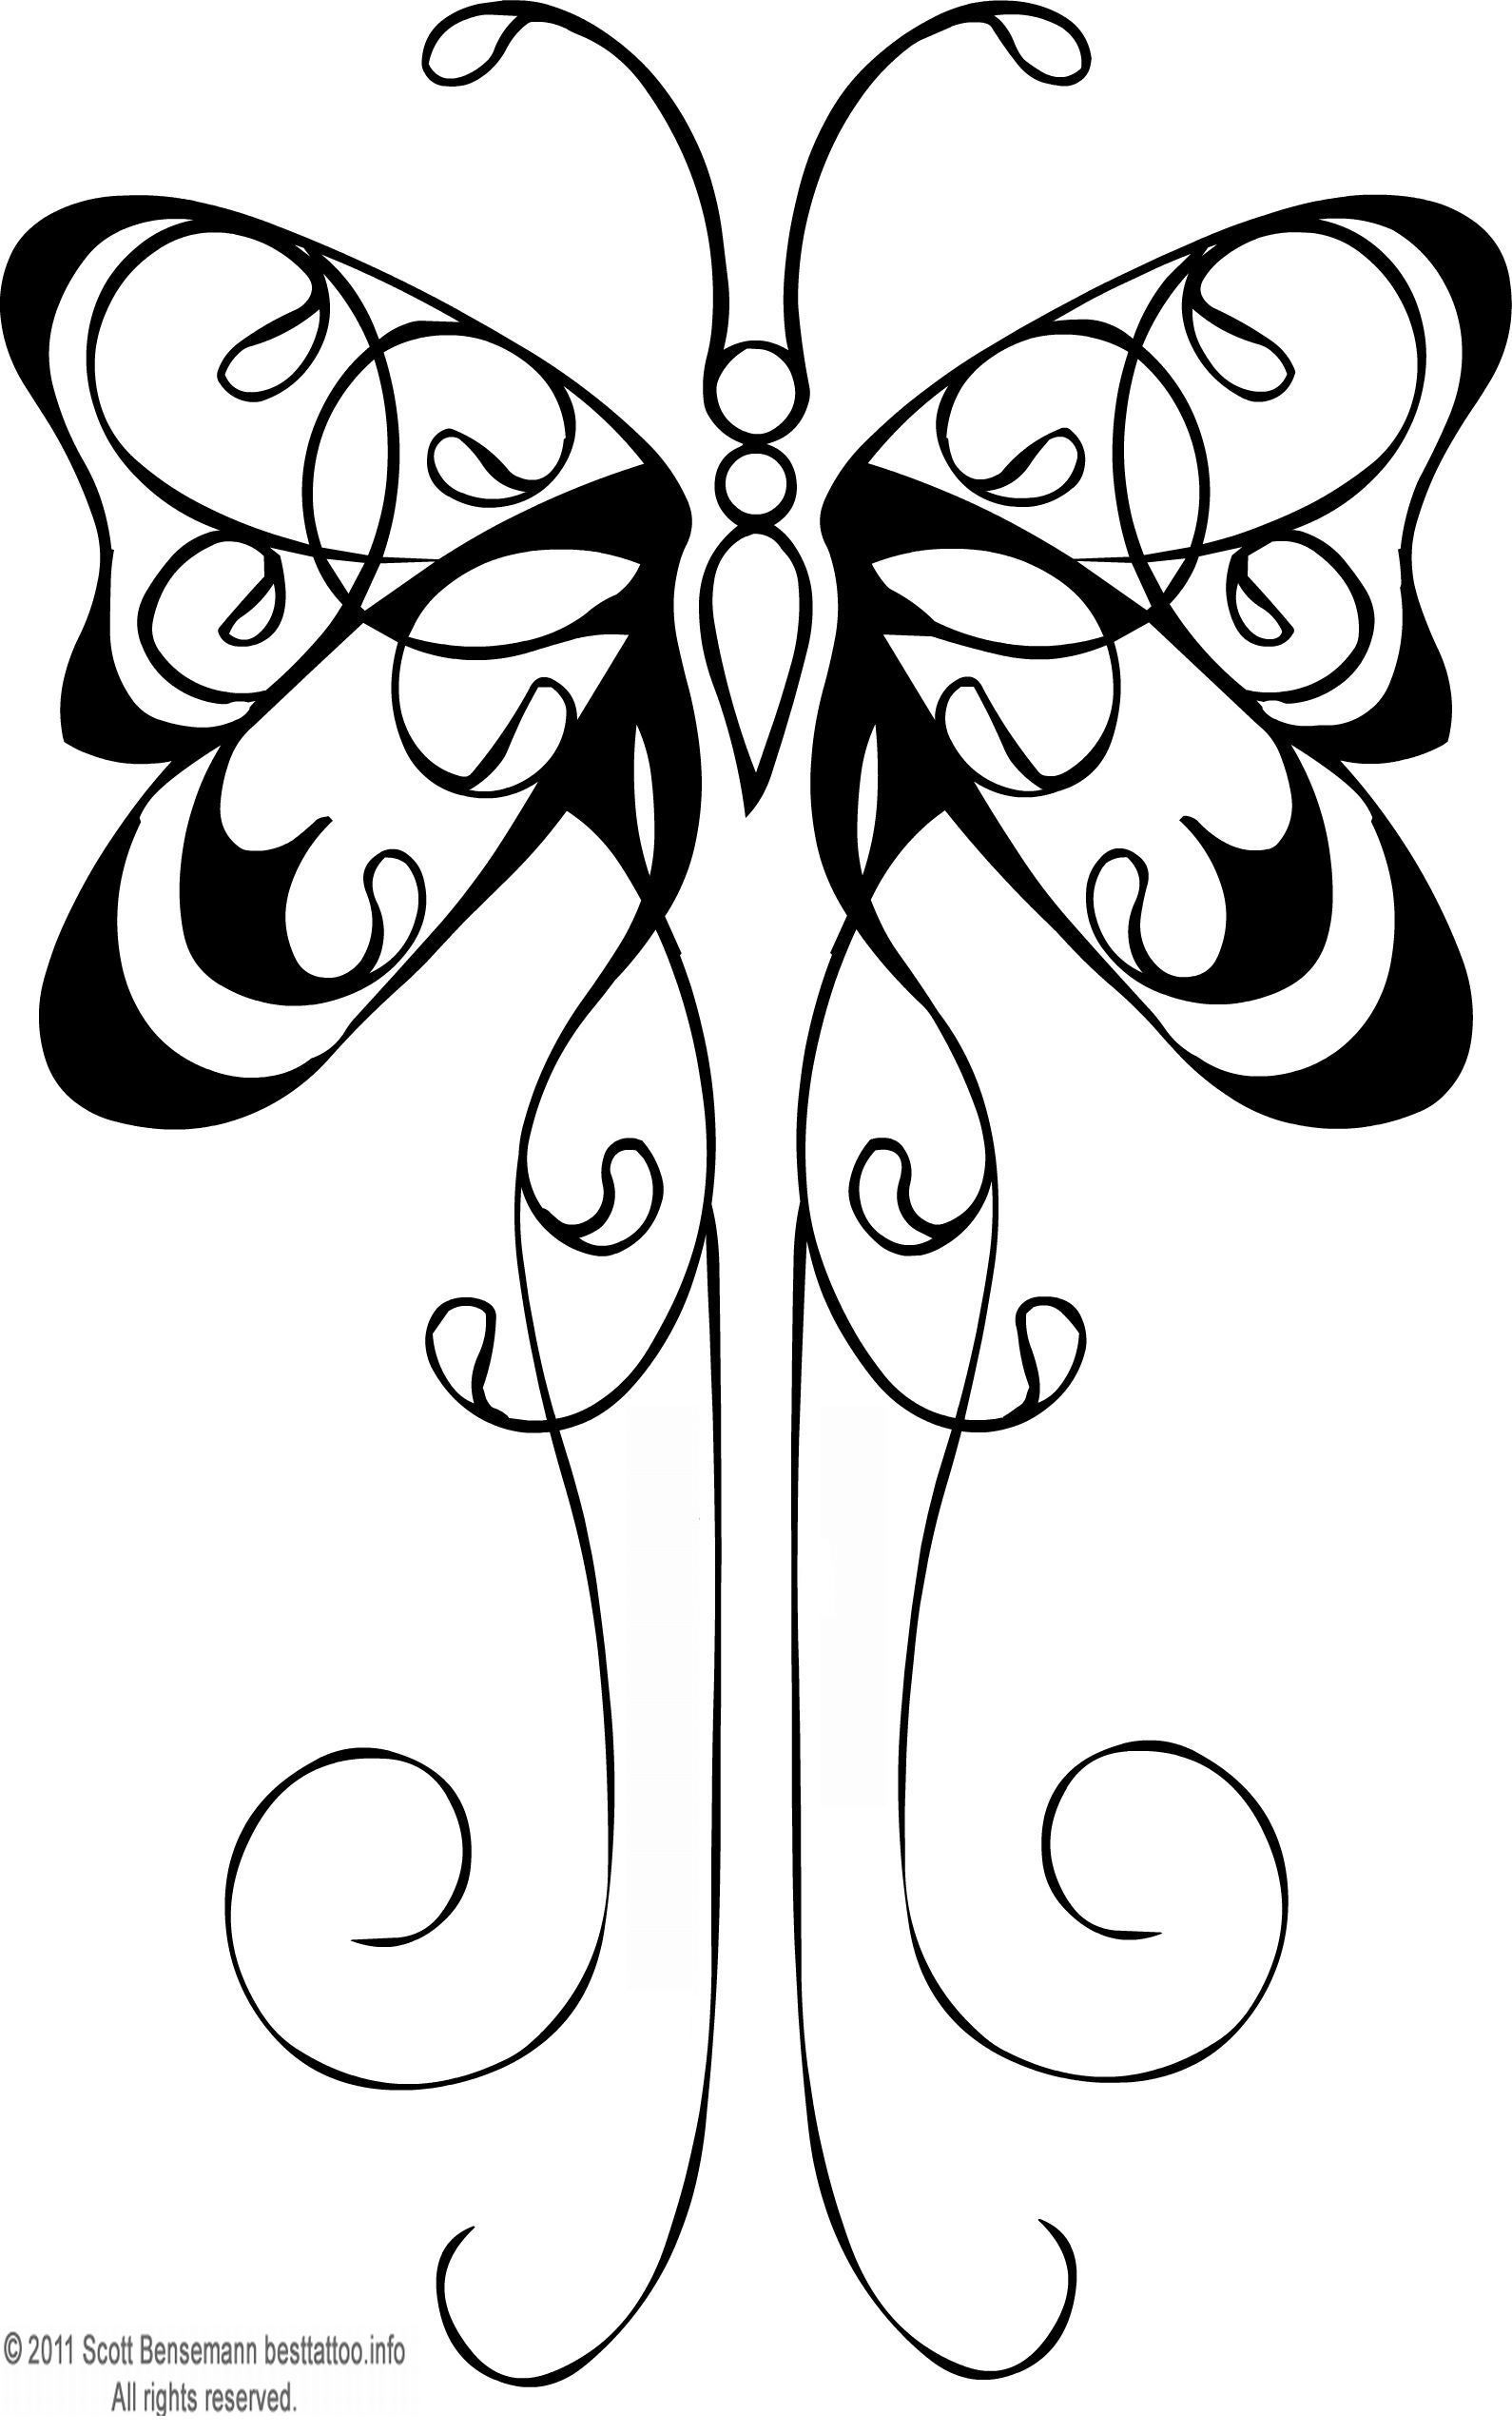 Butterfly Tattoo Flash Black Outline 1590x2558 Pixel Wallpaper in dimensions 1590 X 2558